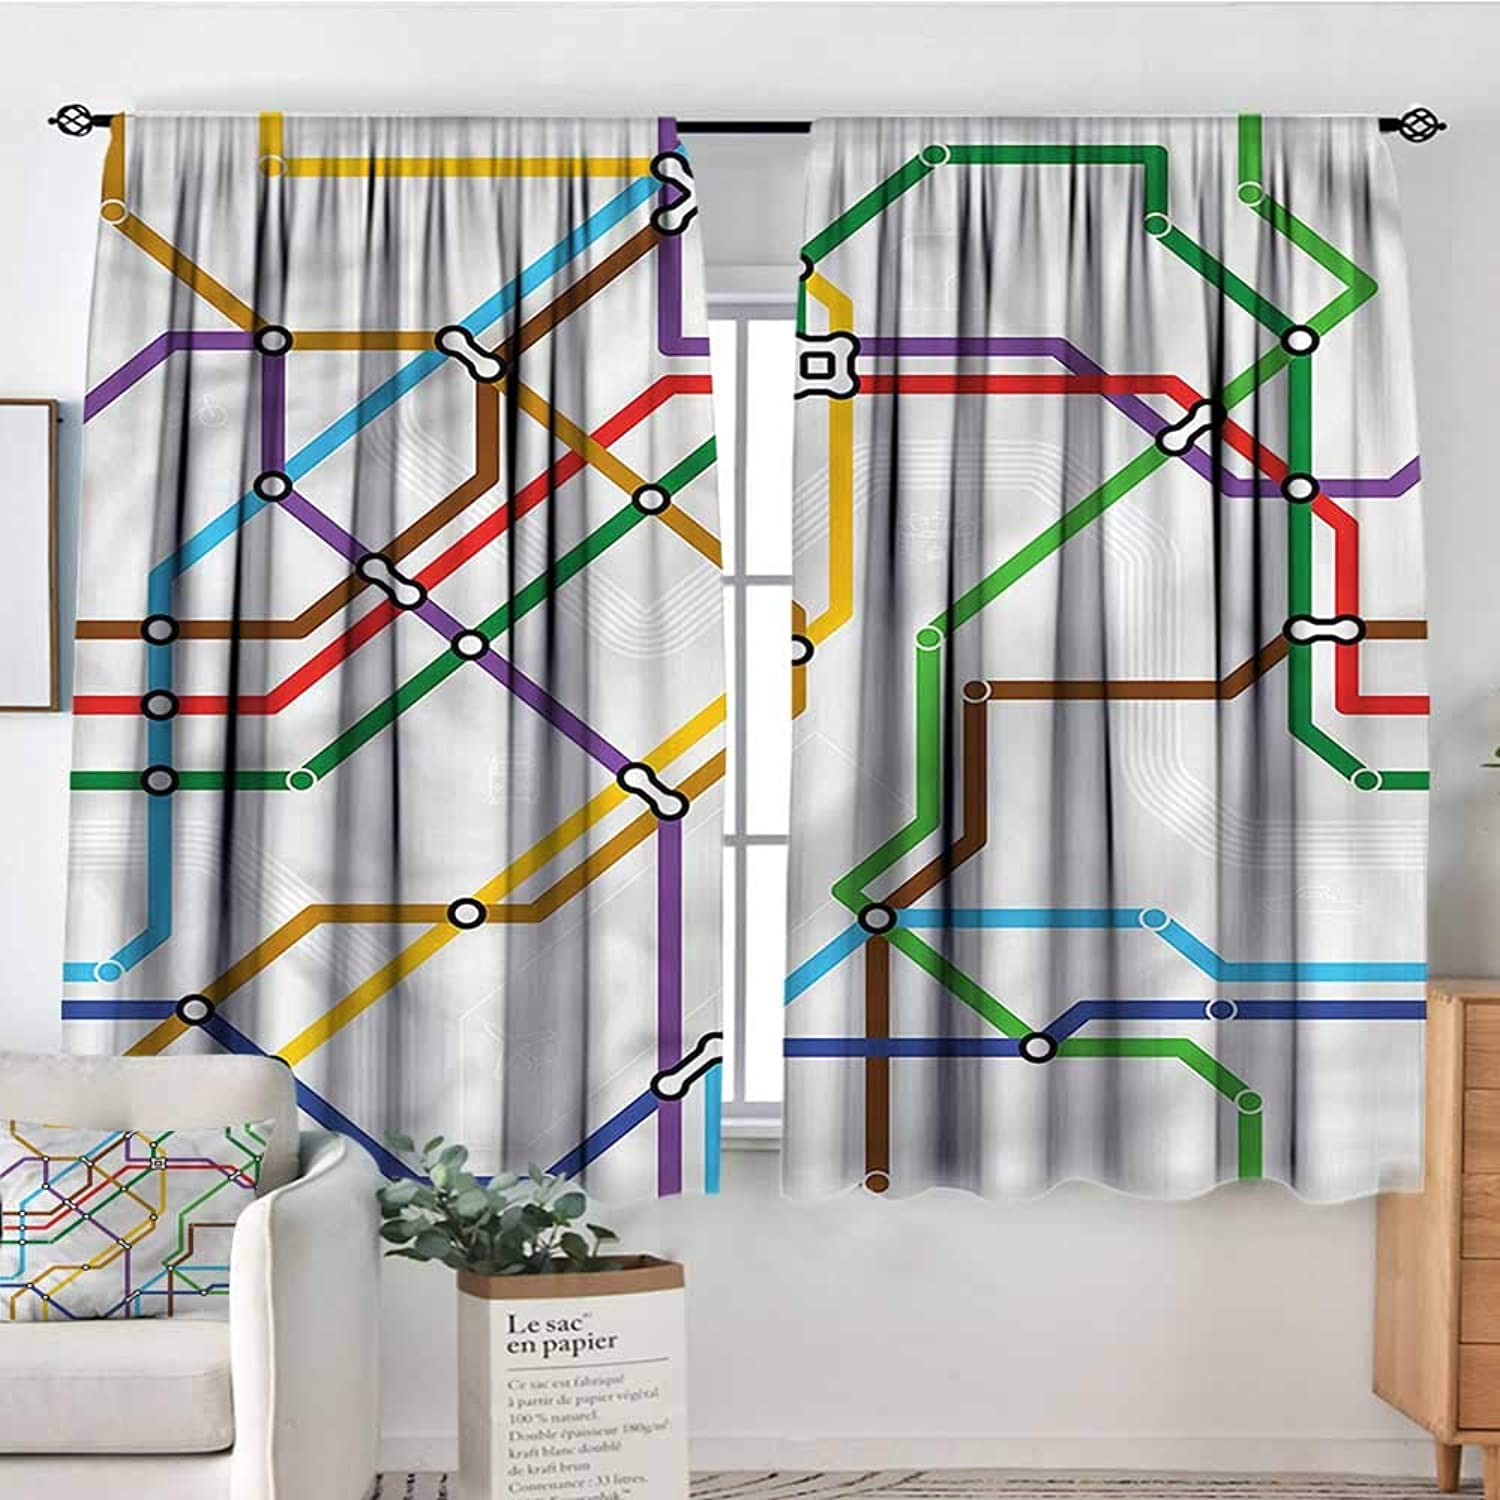 Map,Bocking Ight Rod Curtains Vibrant Striped Metro Route 52 x63  for Baby Bedroom